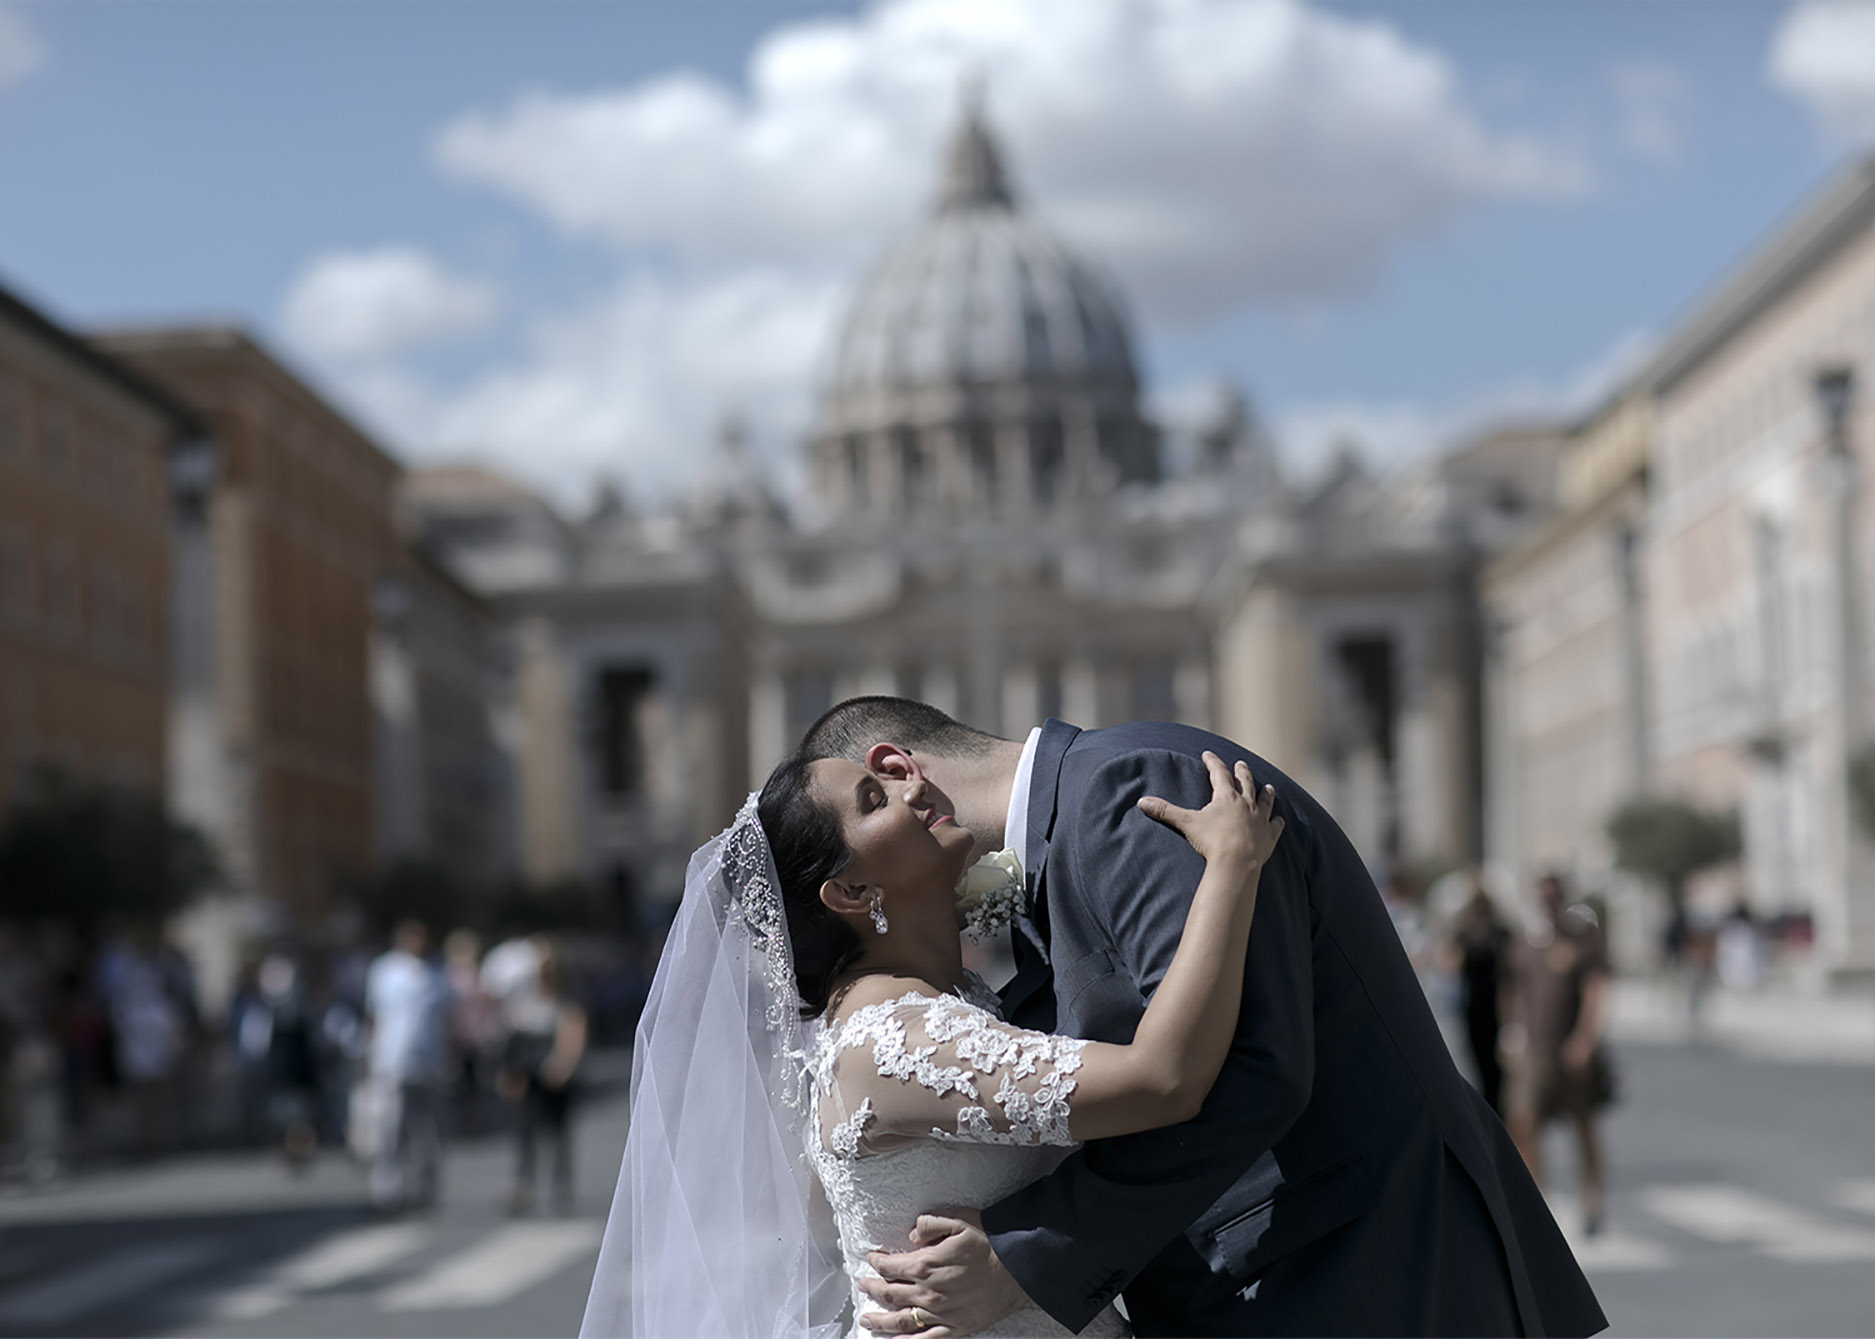 The vatican could be a timeless venue for your charming elopment in Rome